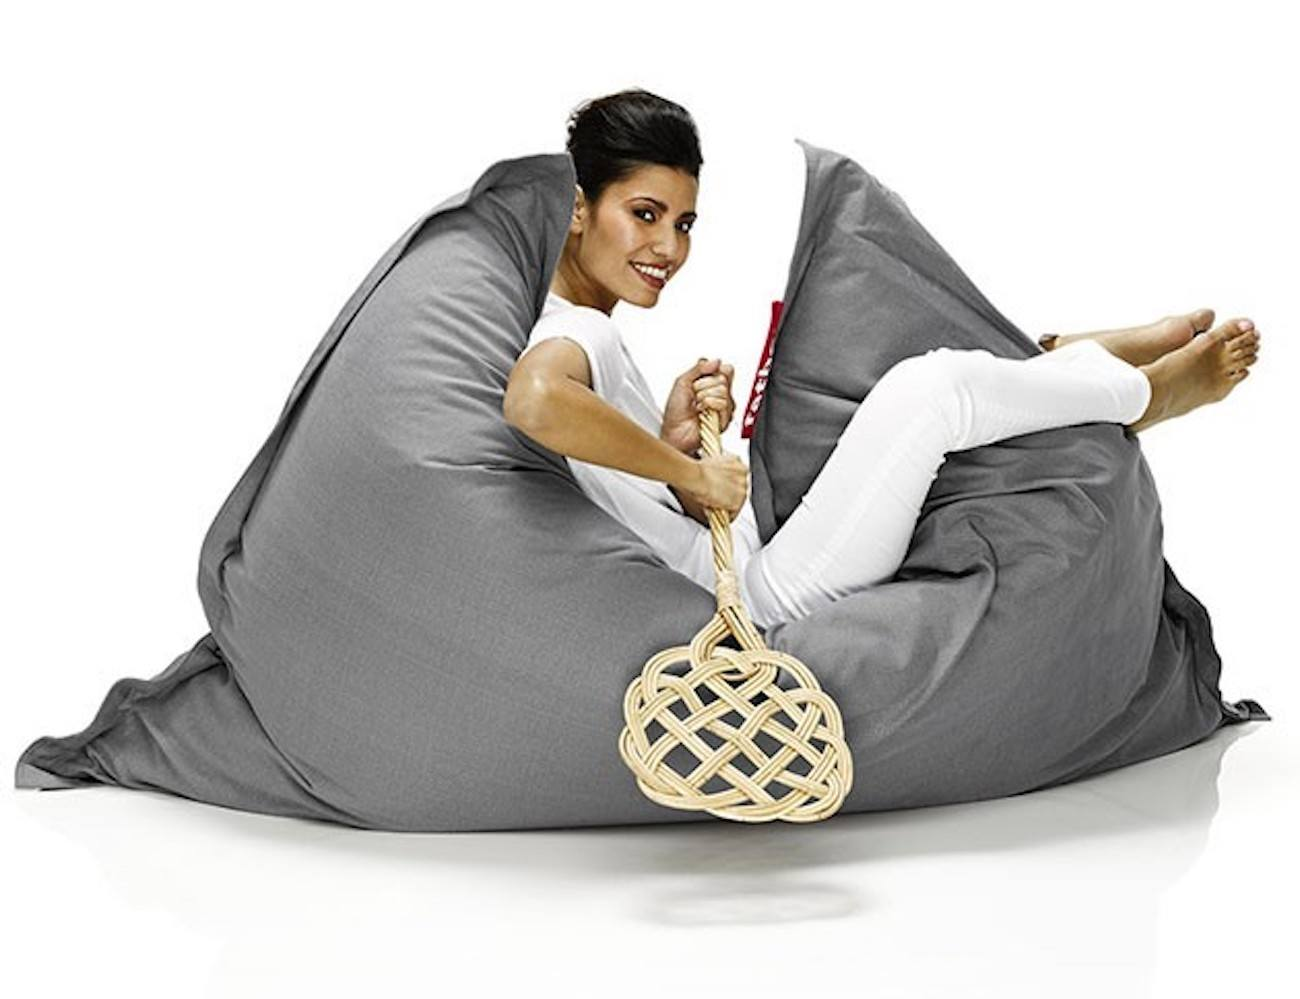 Fatboy Stonewashed Bean Bag